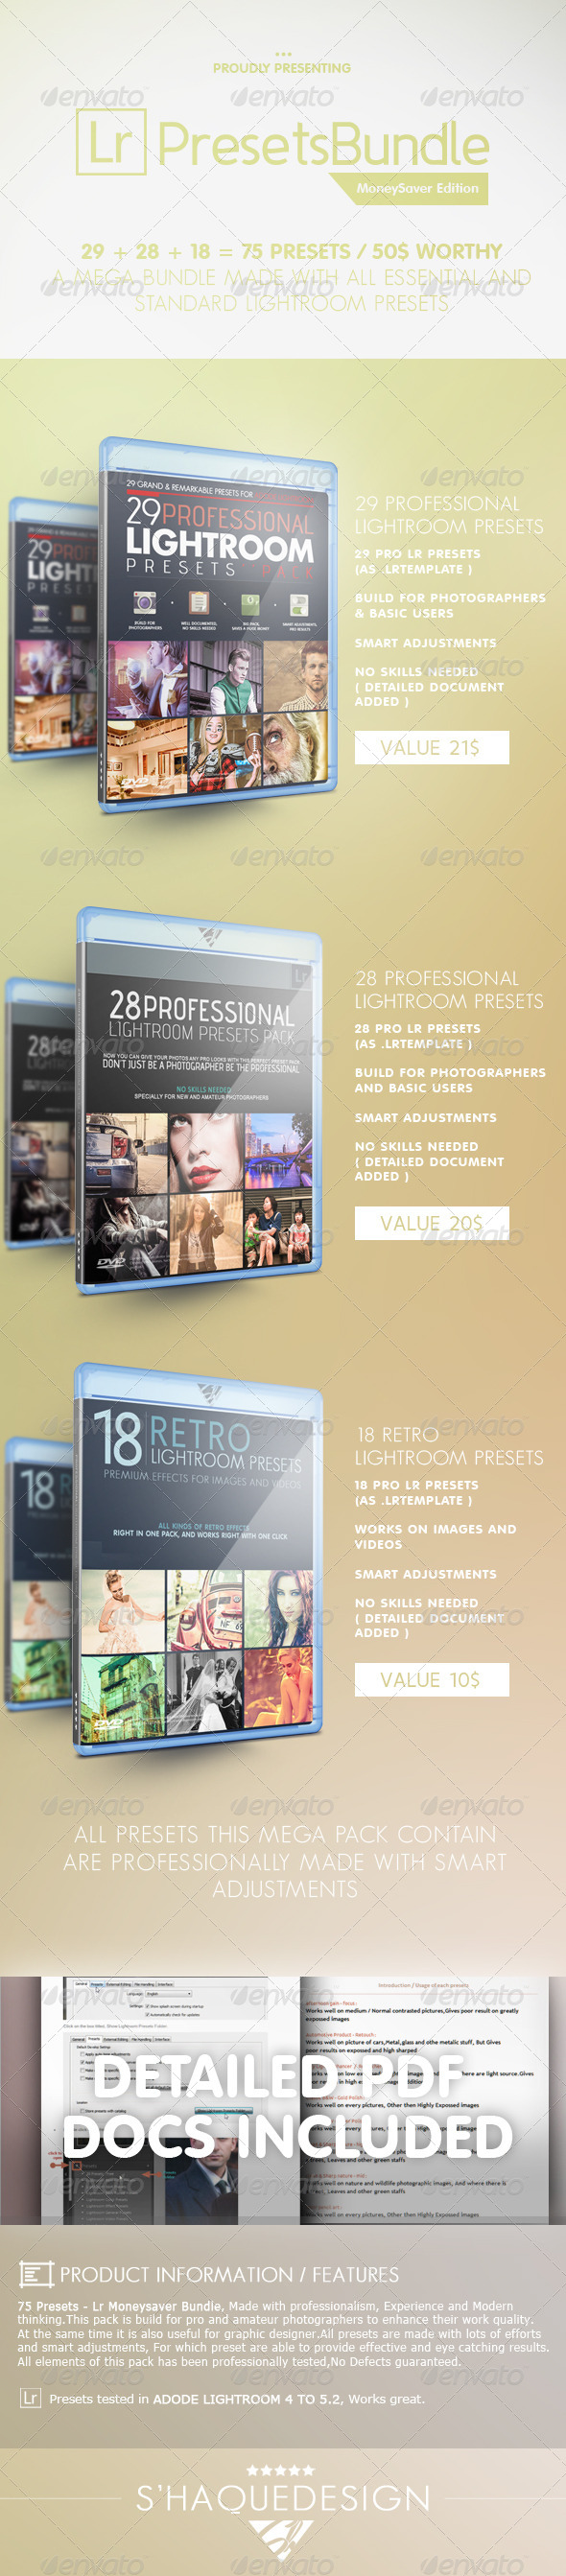 75 Pro Presets - Mega Lr Presets Bundle - Lightroom Presets Add-ons